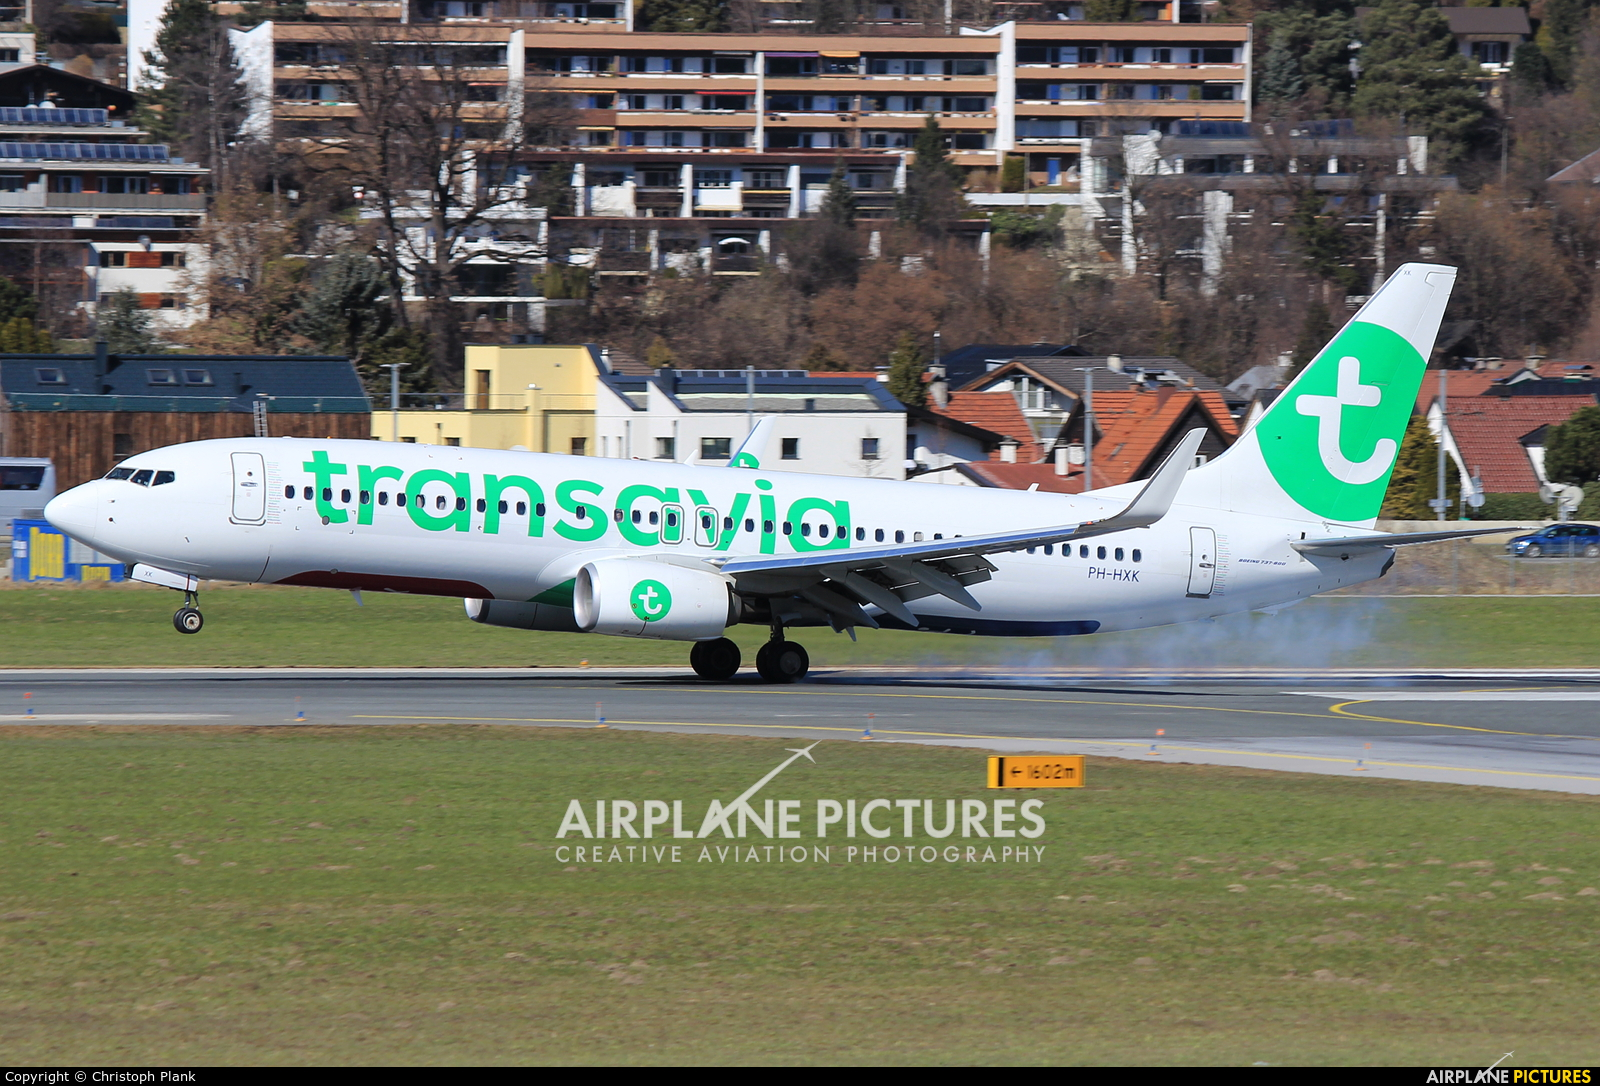 Transavia PH-HXK aircraft at Innsbruck